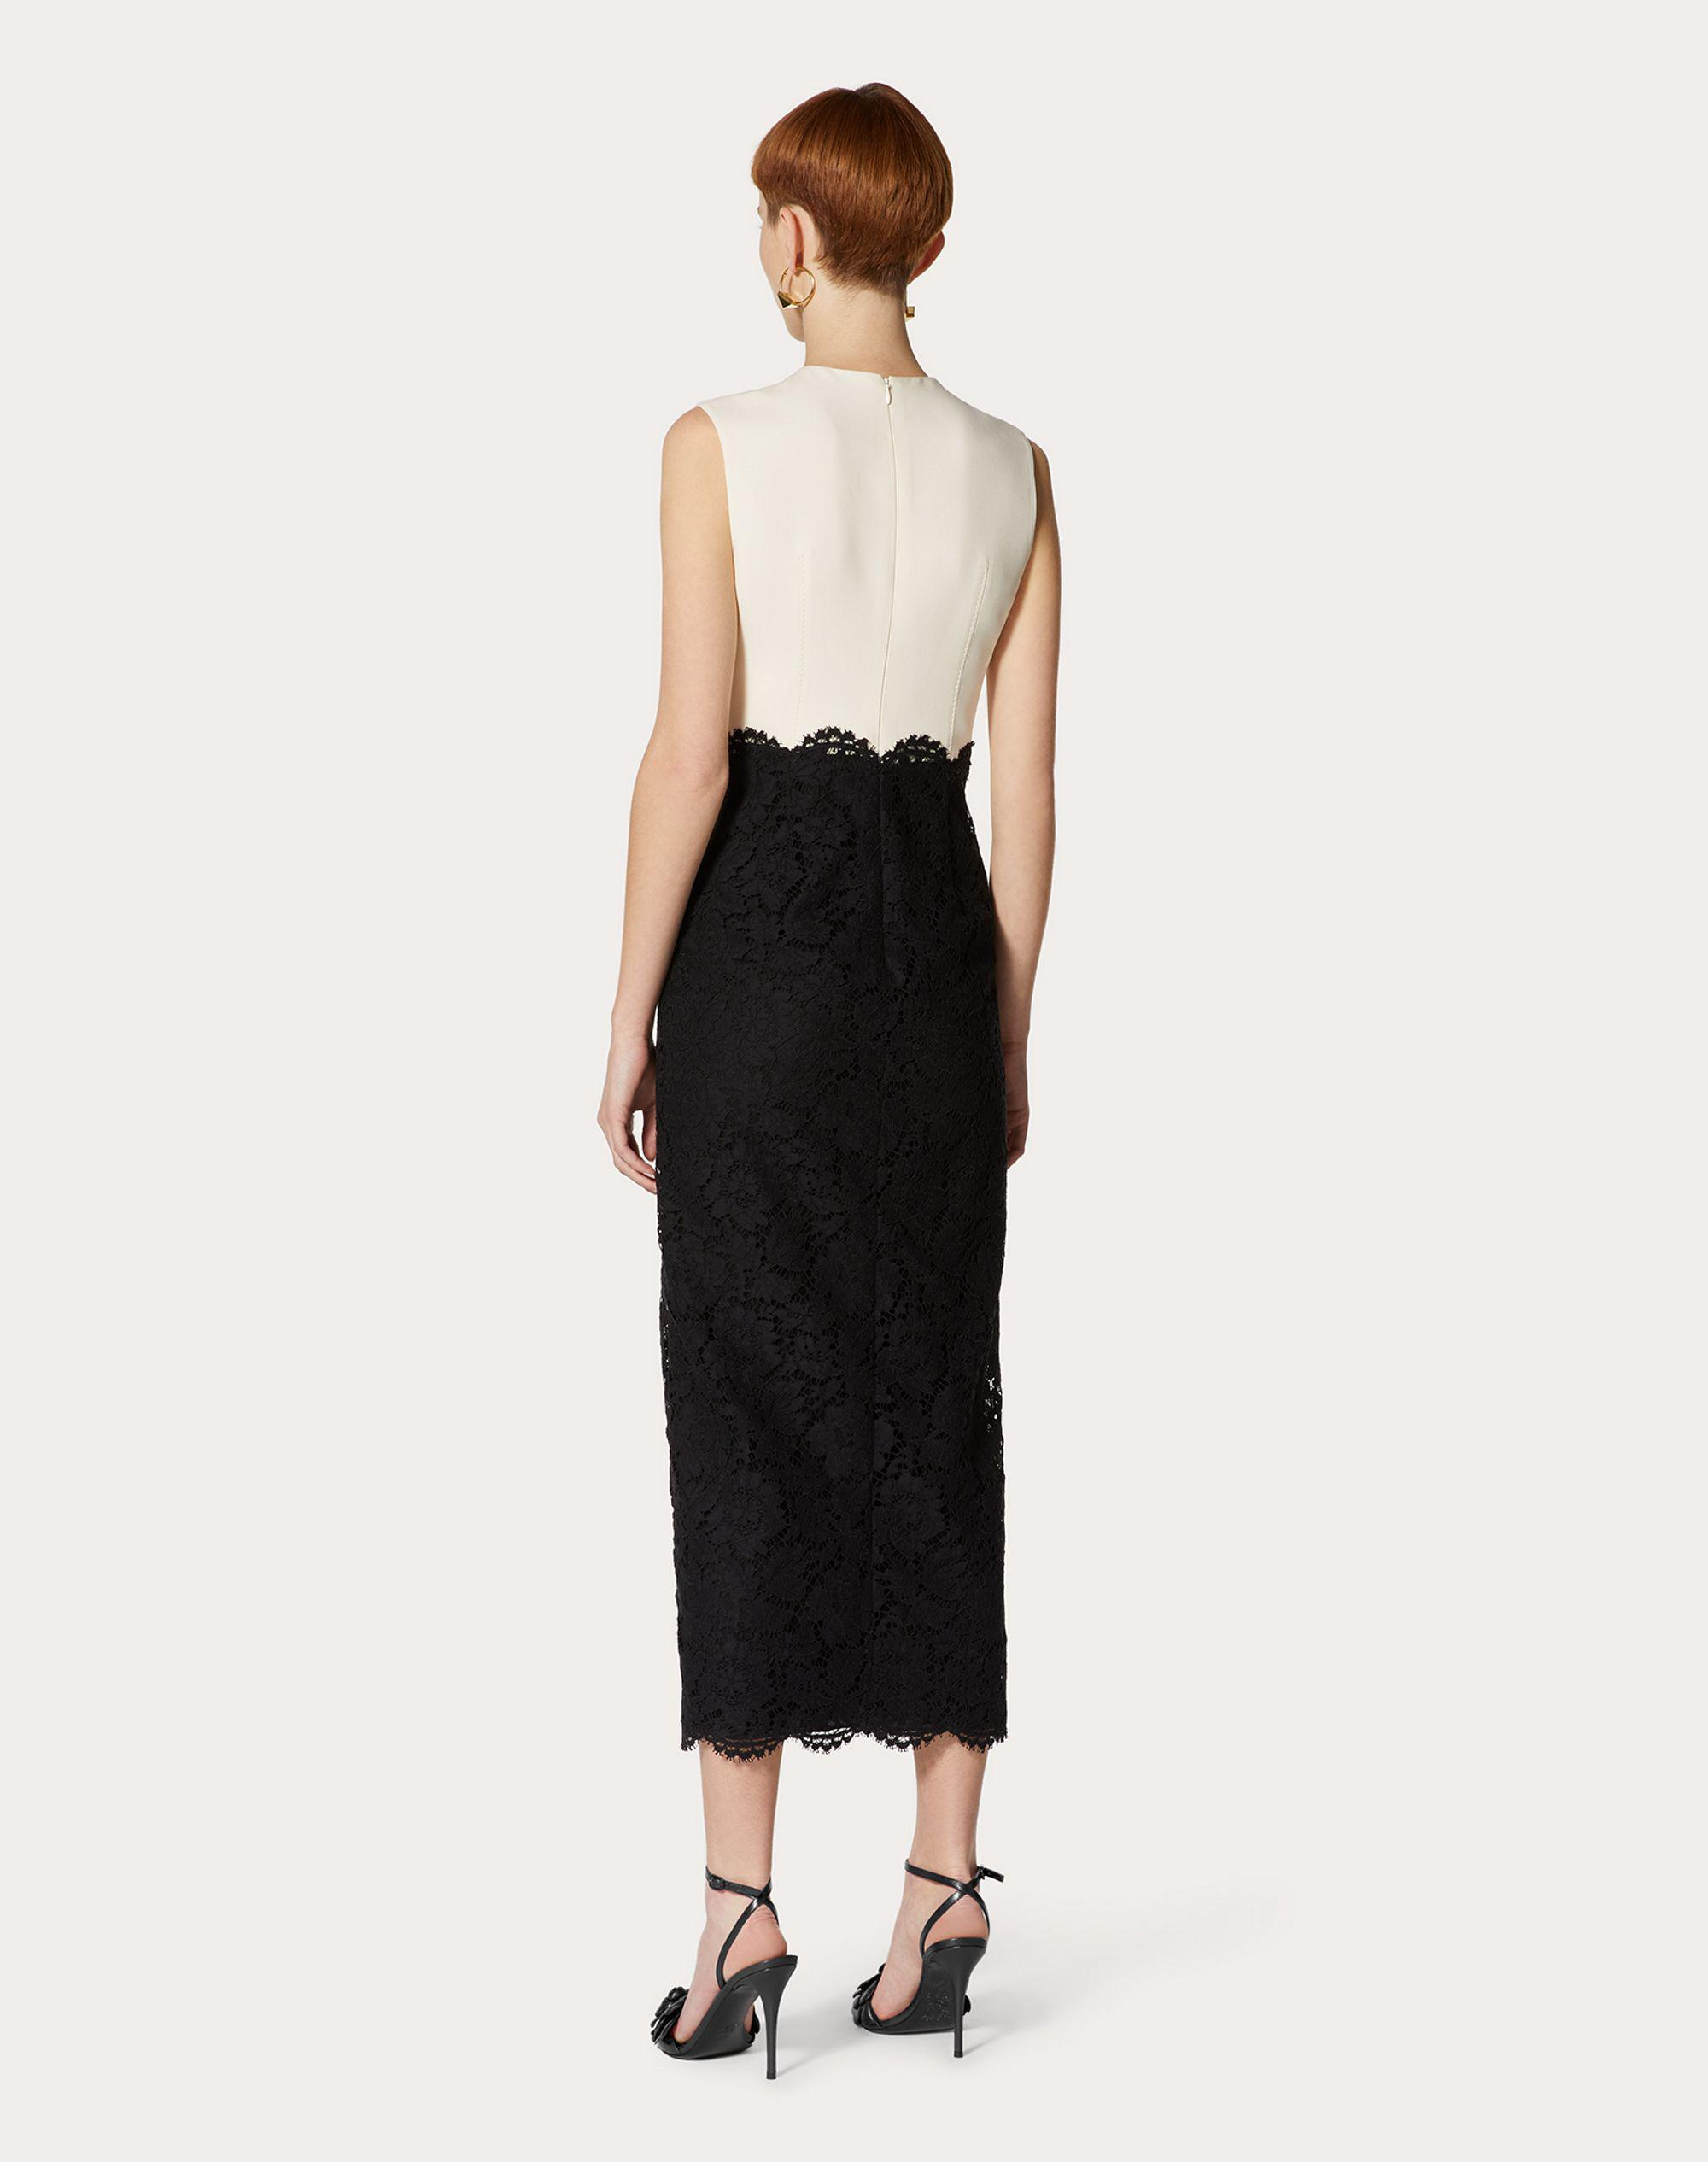 CREPE COUTURE AND HEAVY LACE DRESS 2